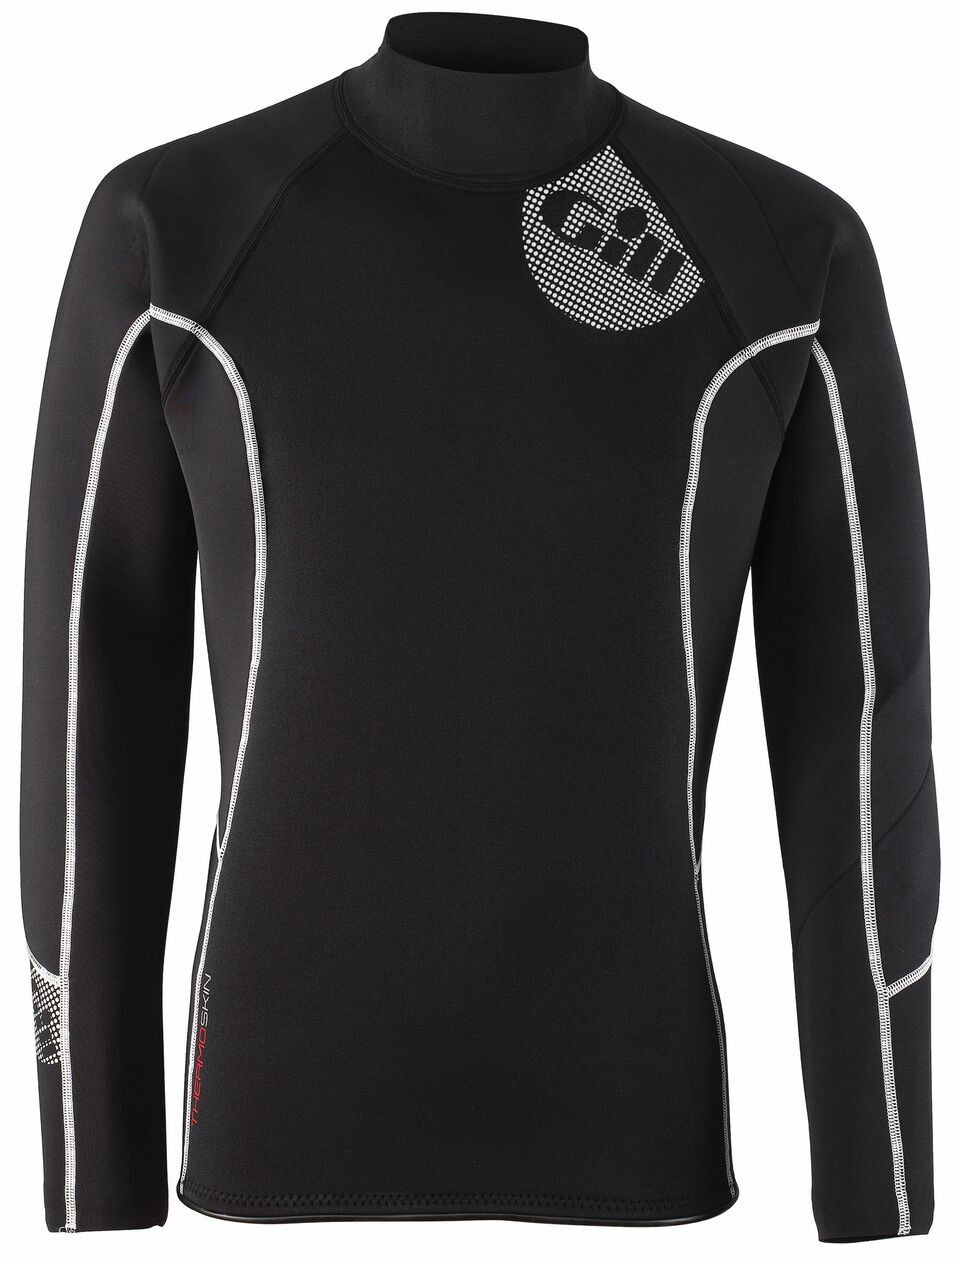 Gill Thermoskin Top - Men's